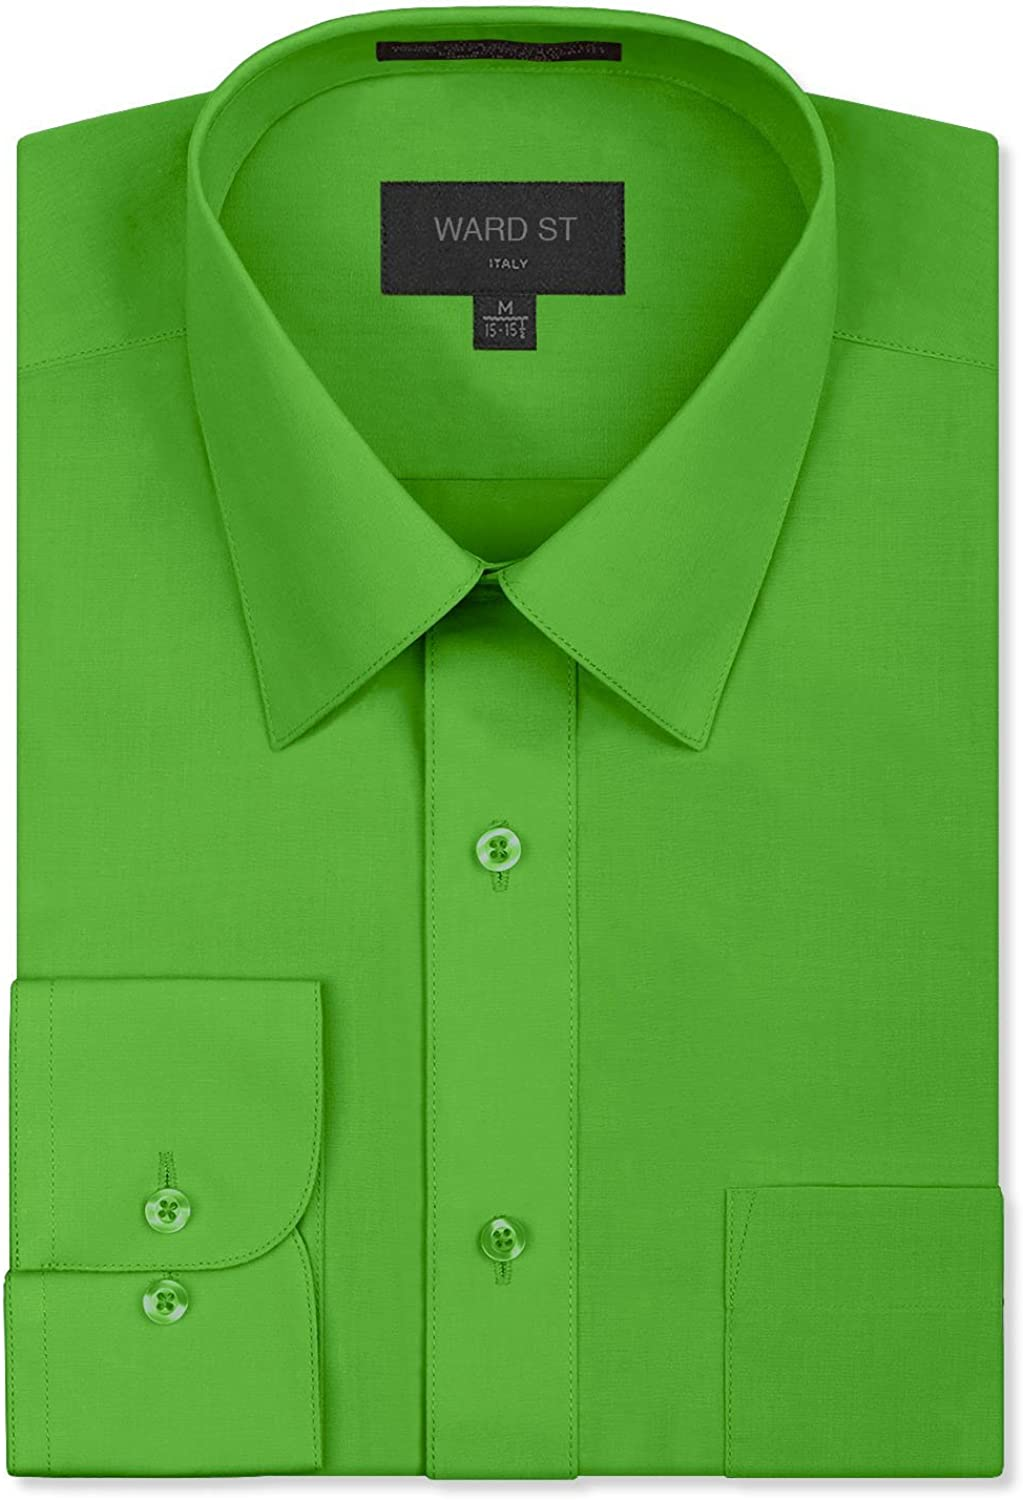 Complete Free Shipping Ward St Men's Regular Shirts Max 80% OFF Fit Dress